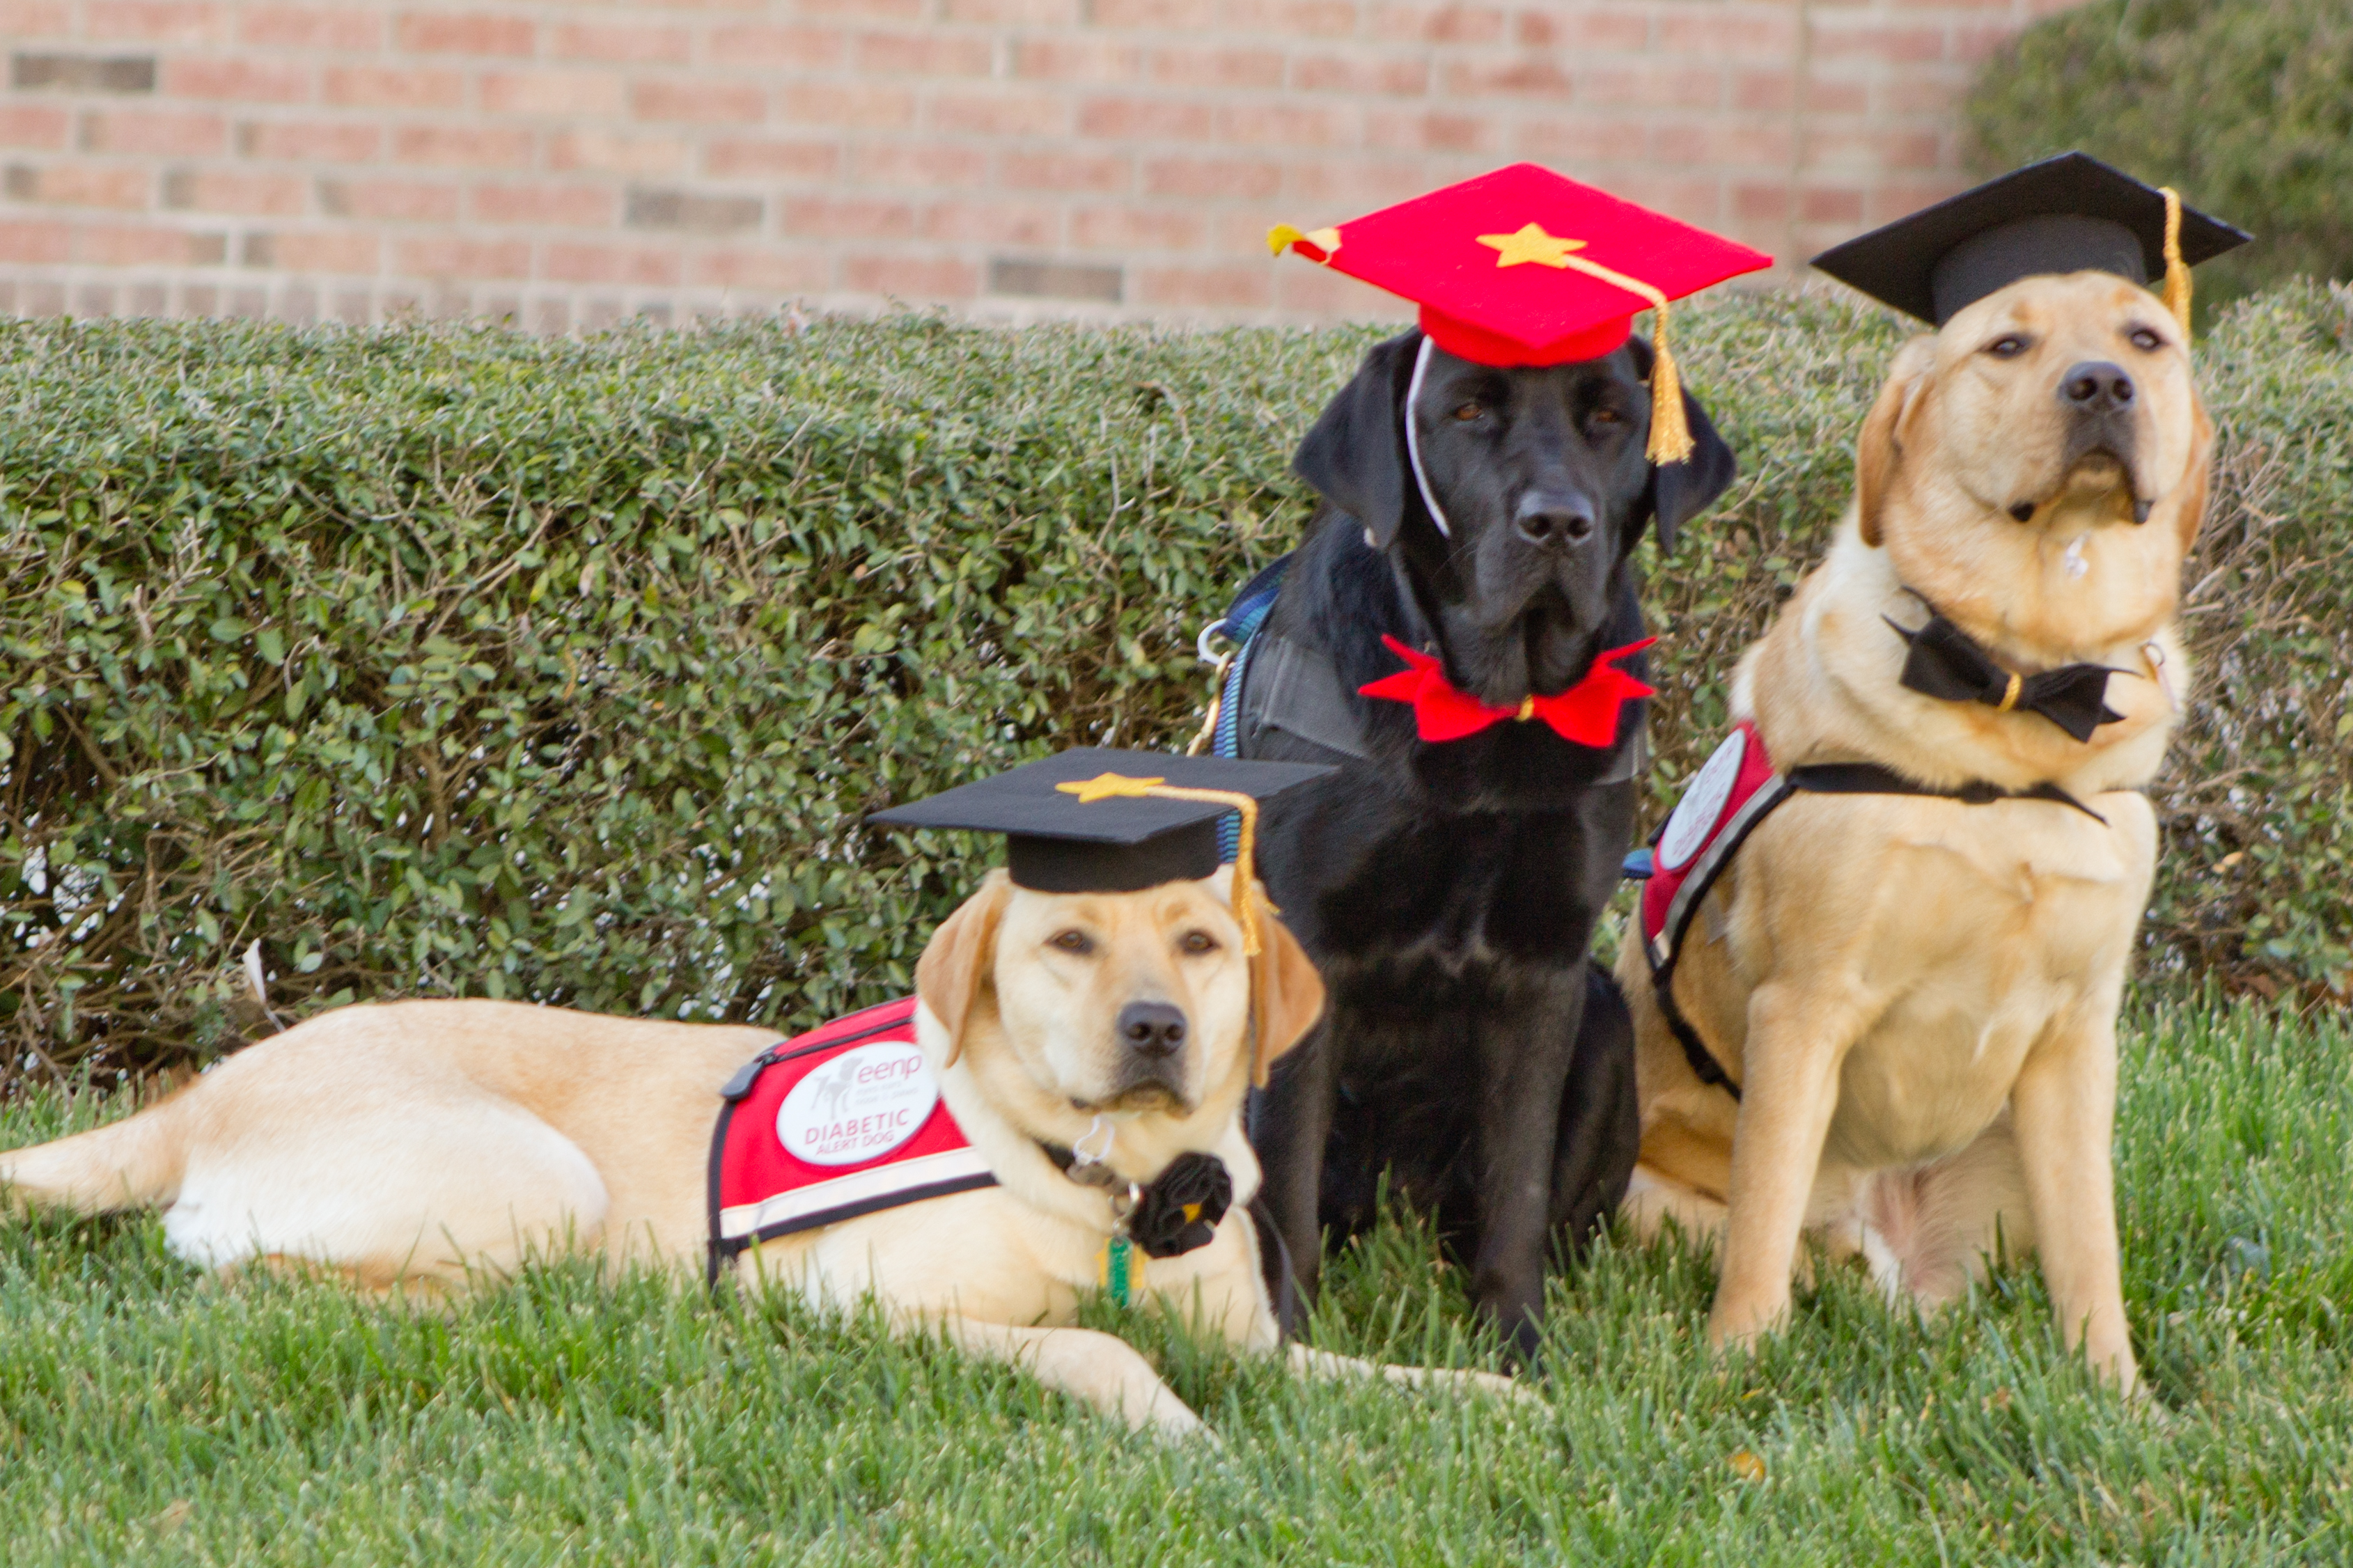 Three Labrador Retrievers in vest, wearing mortarboards and bowties